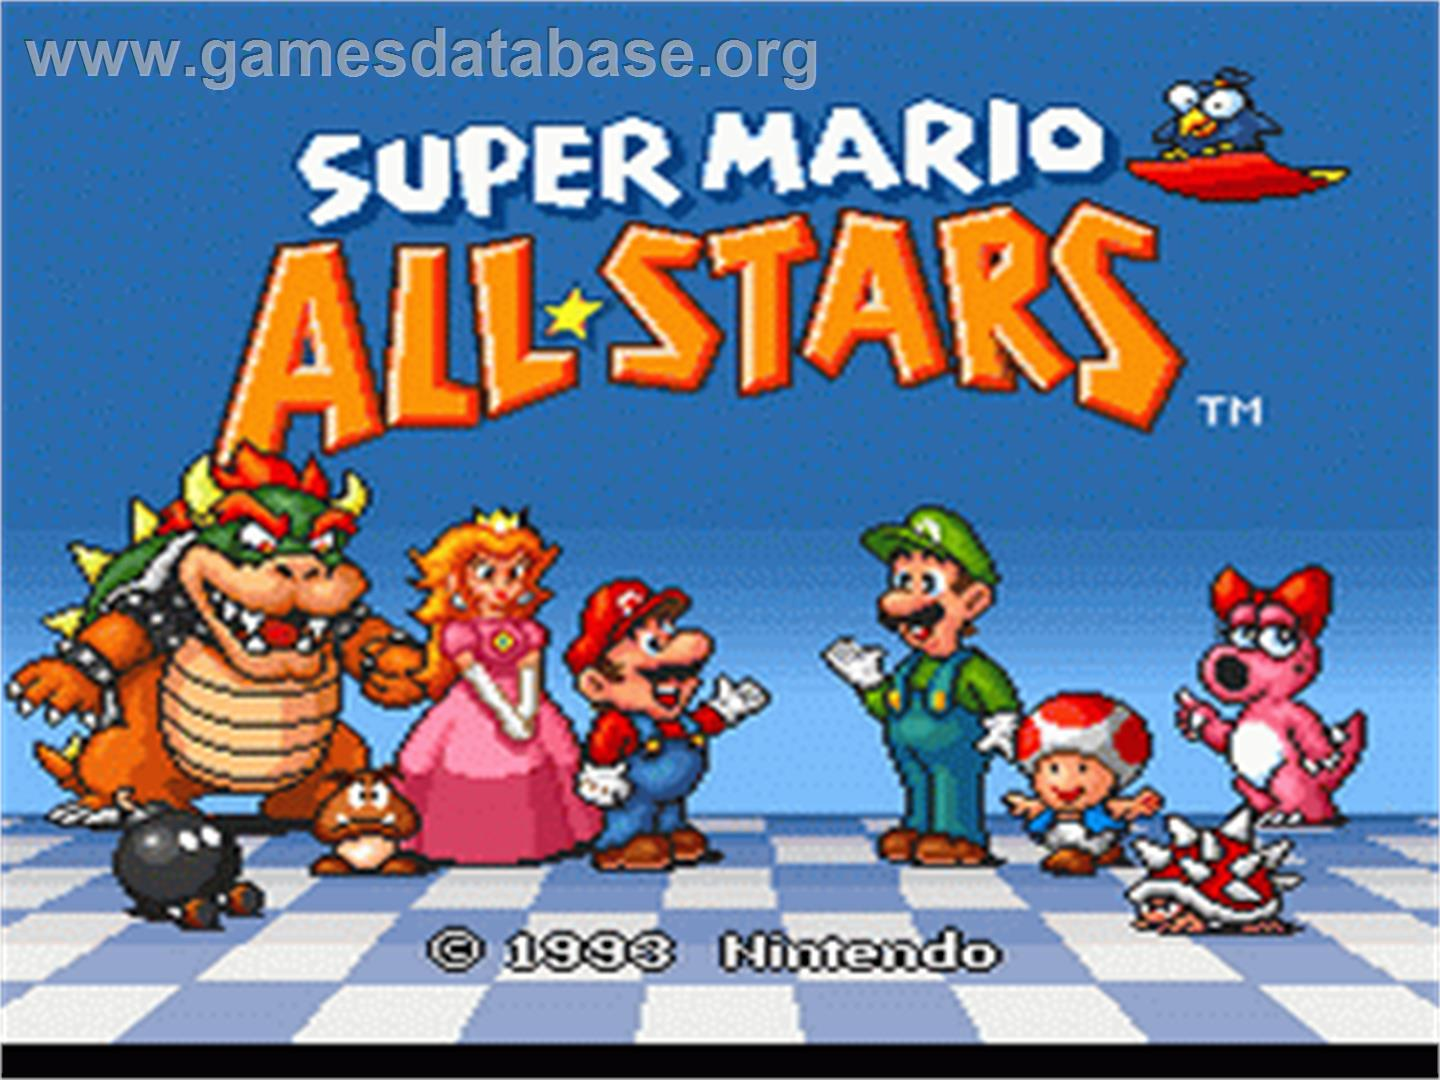 Super Mario All-Stars - Nintendo SNES - Artwork - Title Screen